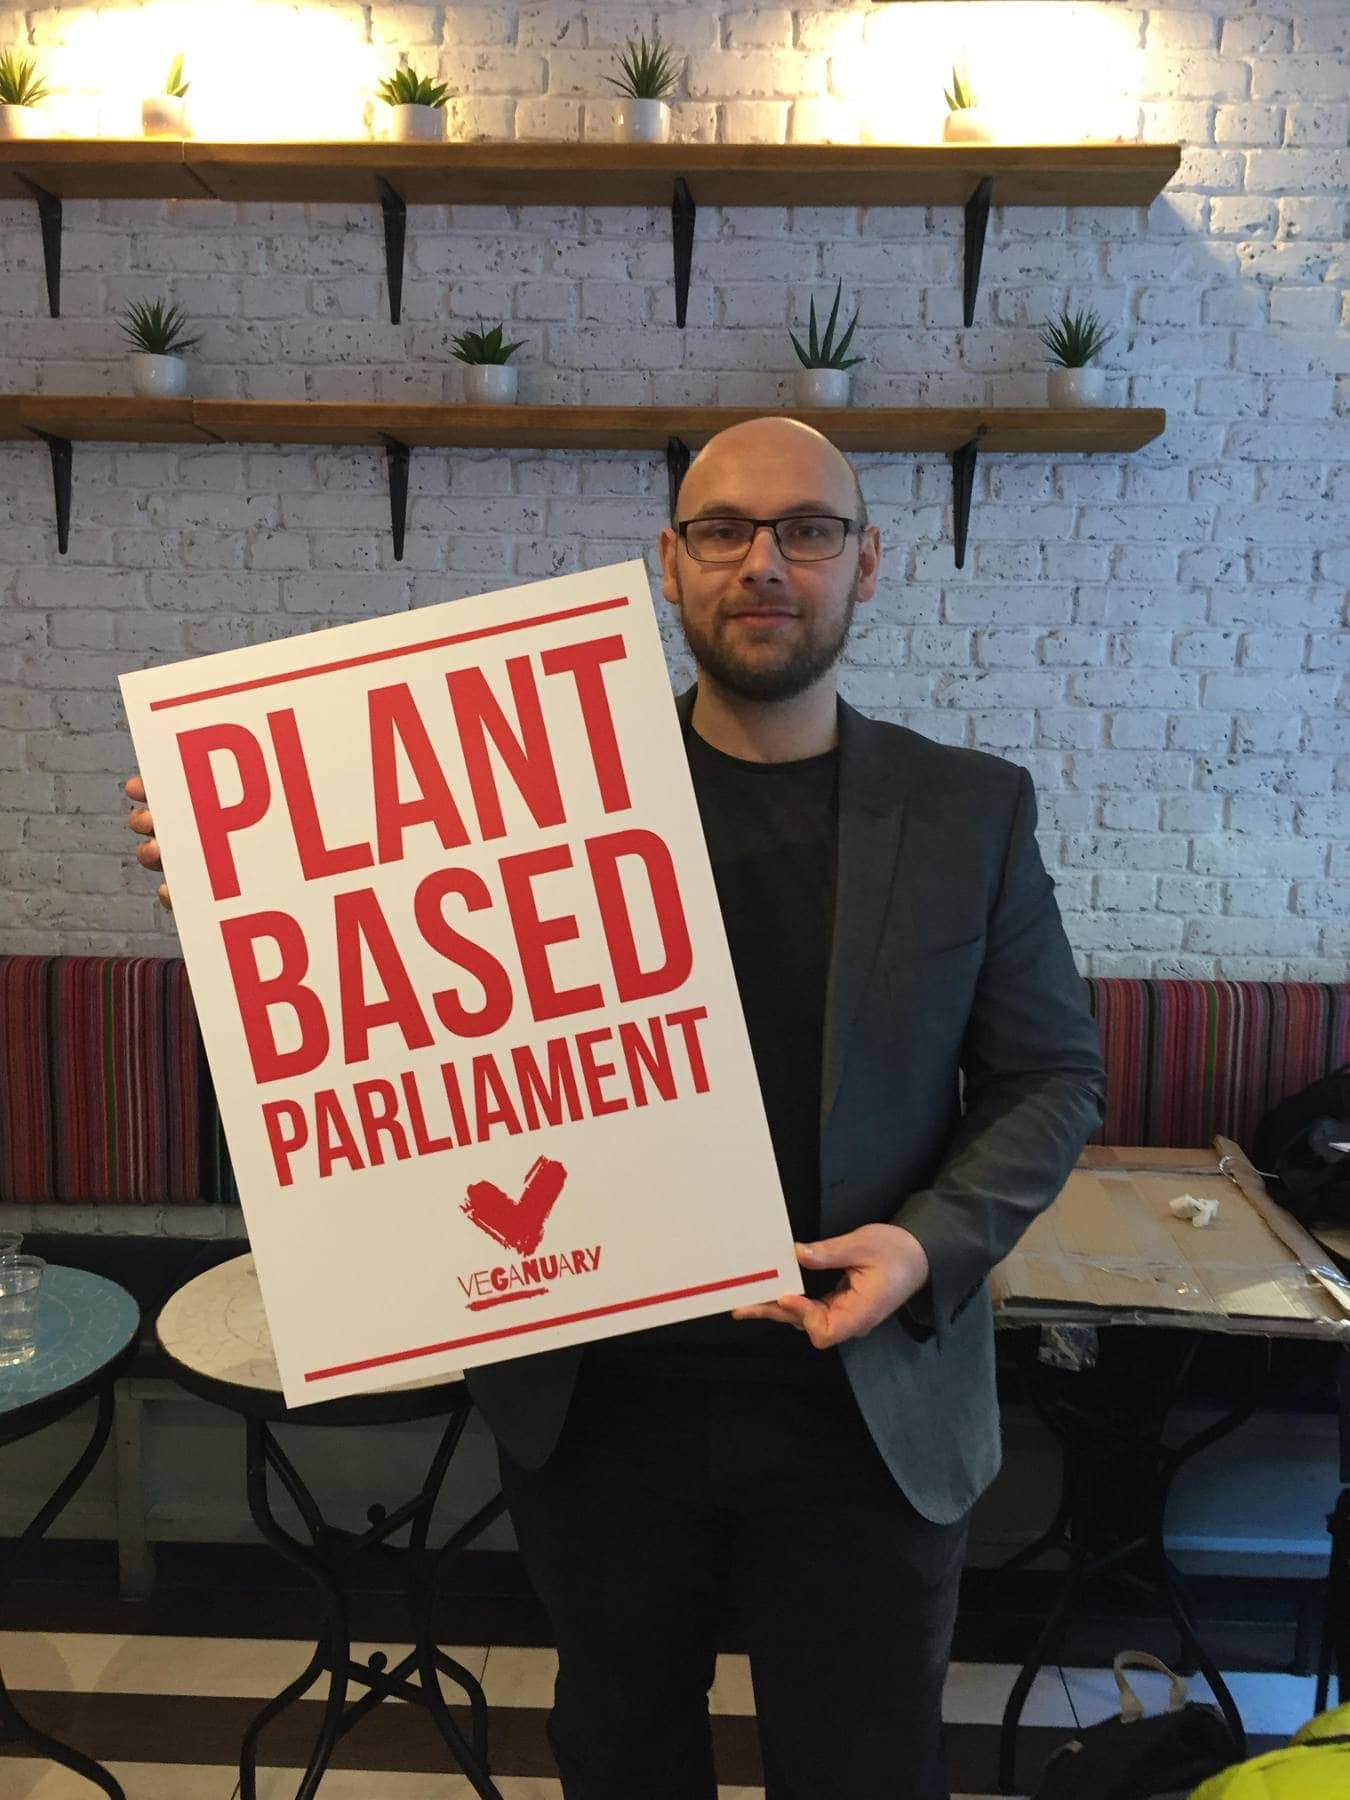 Veganuary 2019 kicks off with a call on UK parliament to try vegan this January 1